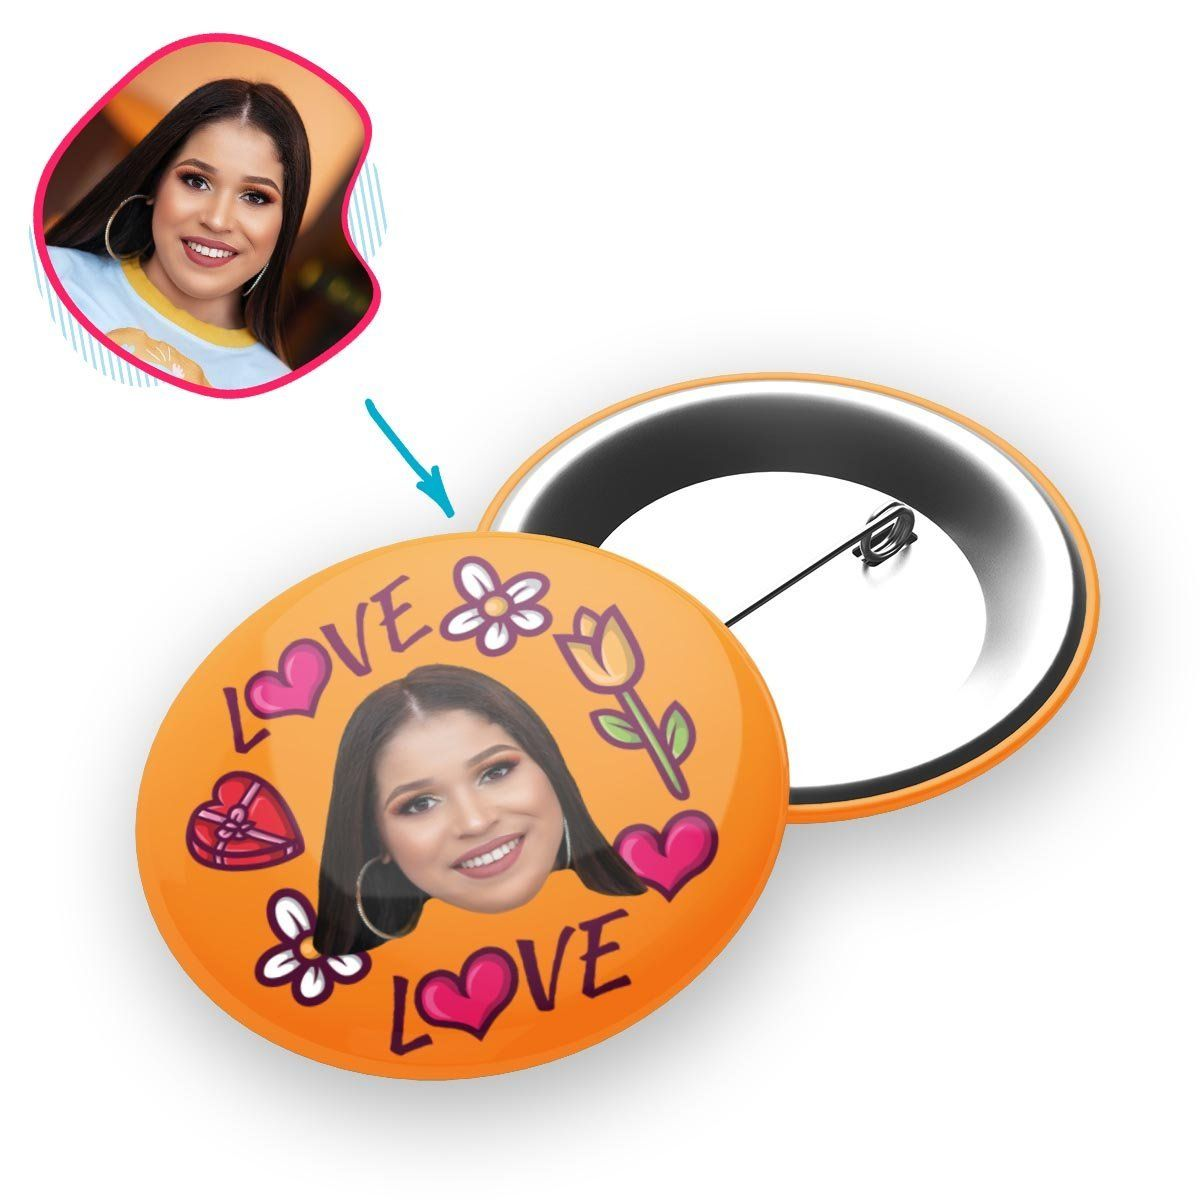 orange Hearts and Flowers pin personalized with photo of face printed on it